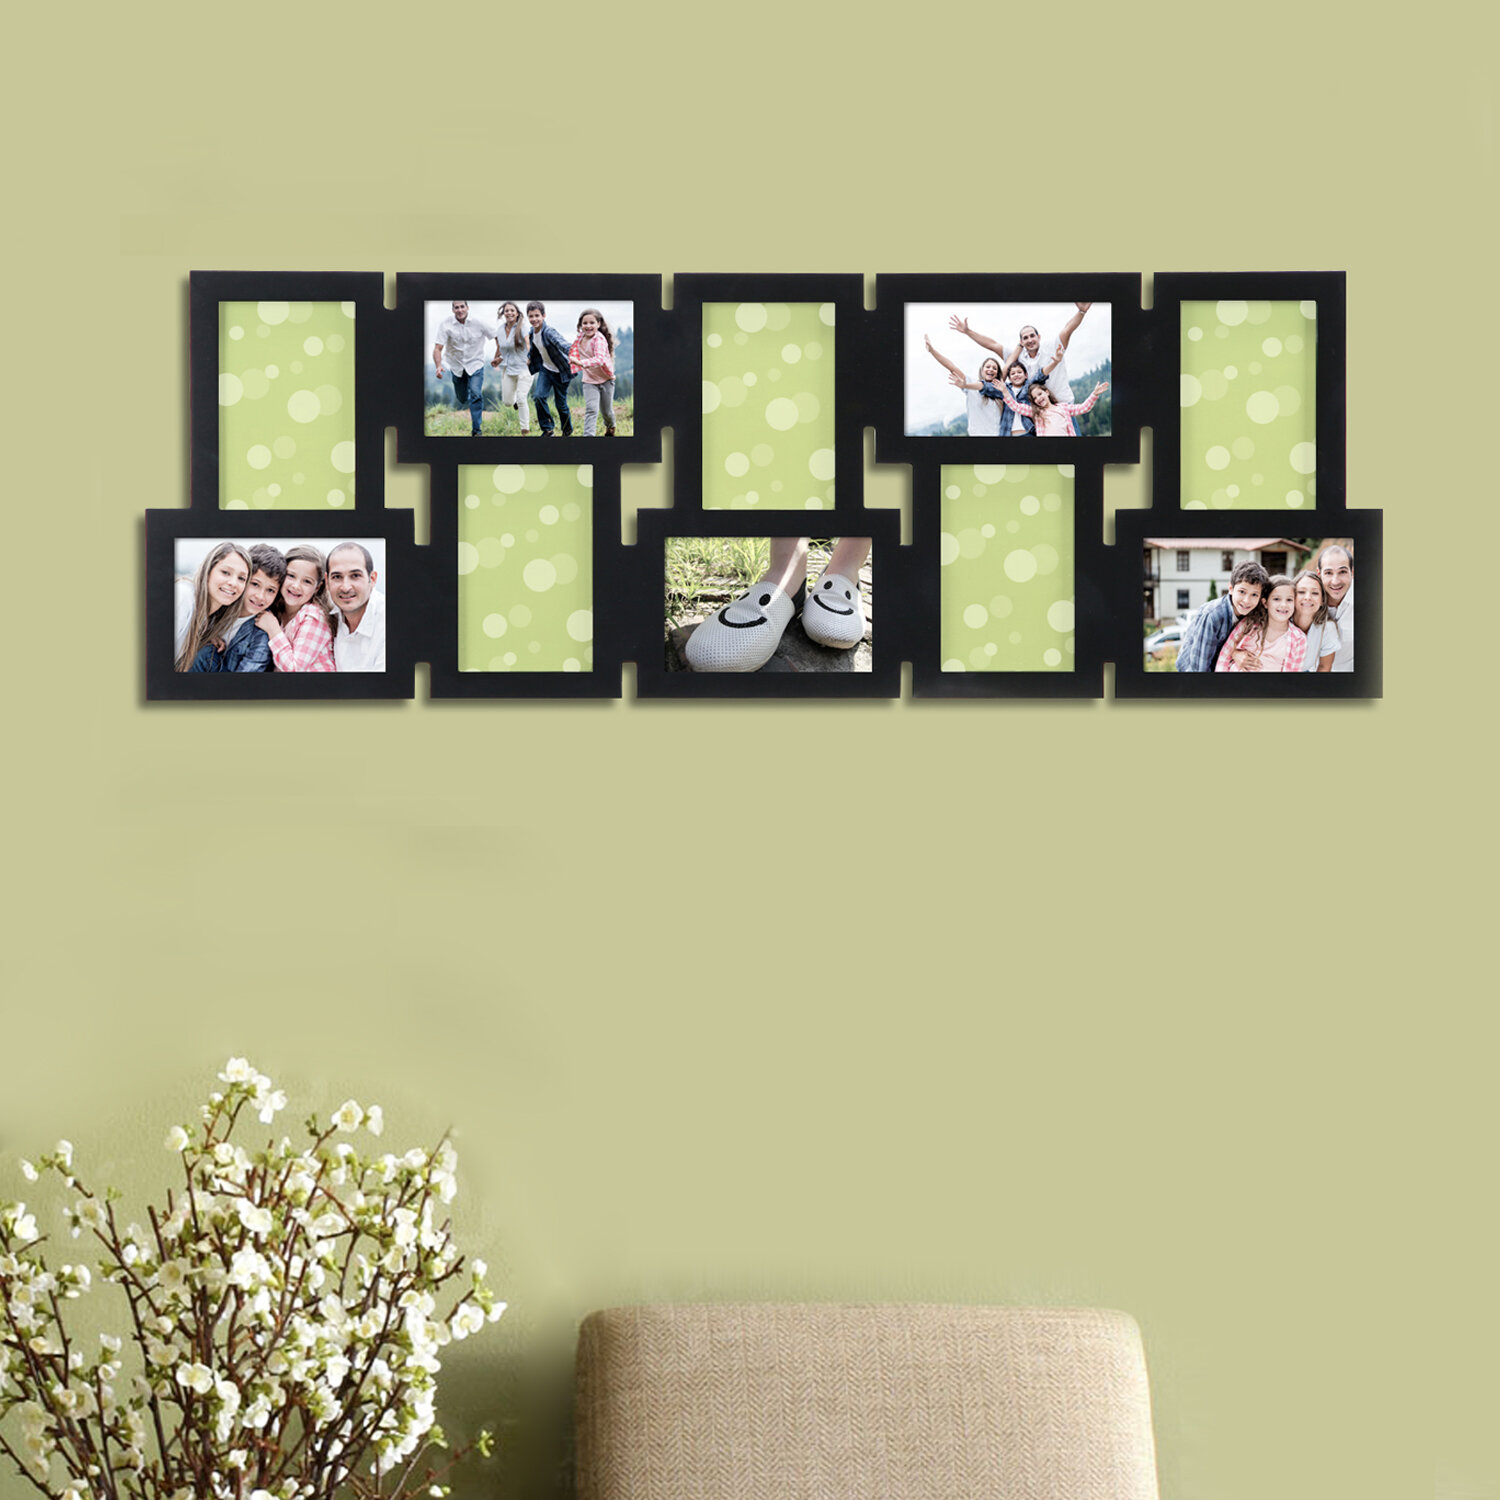 10 Opening Decorative Interlocking Wall Hanging Collage Picture ...